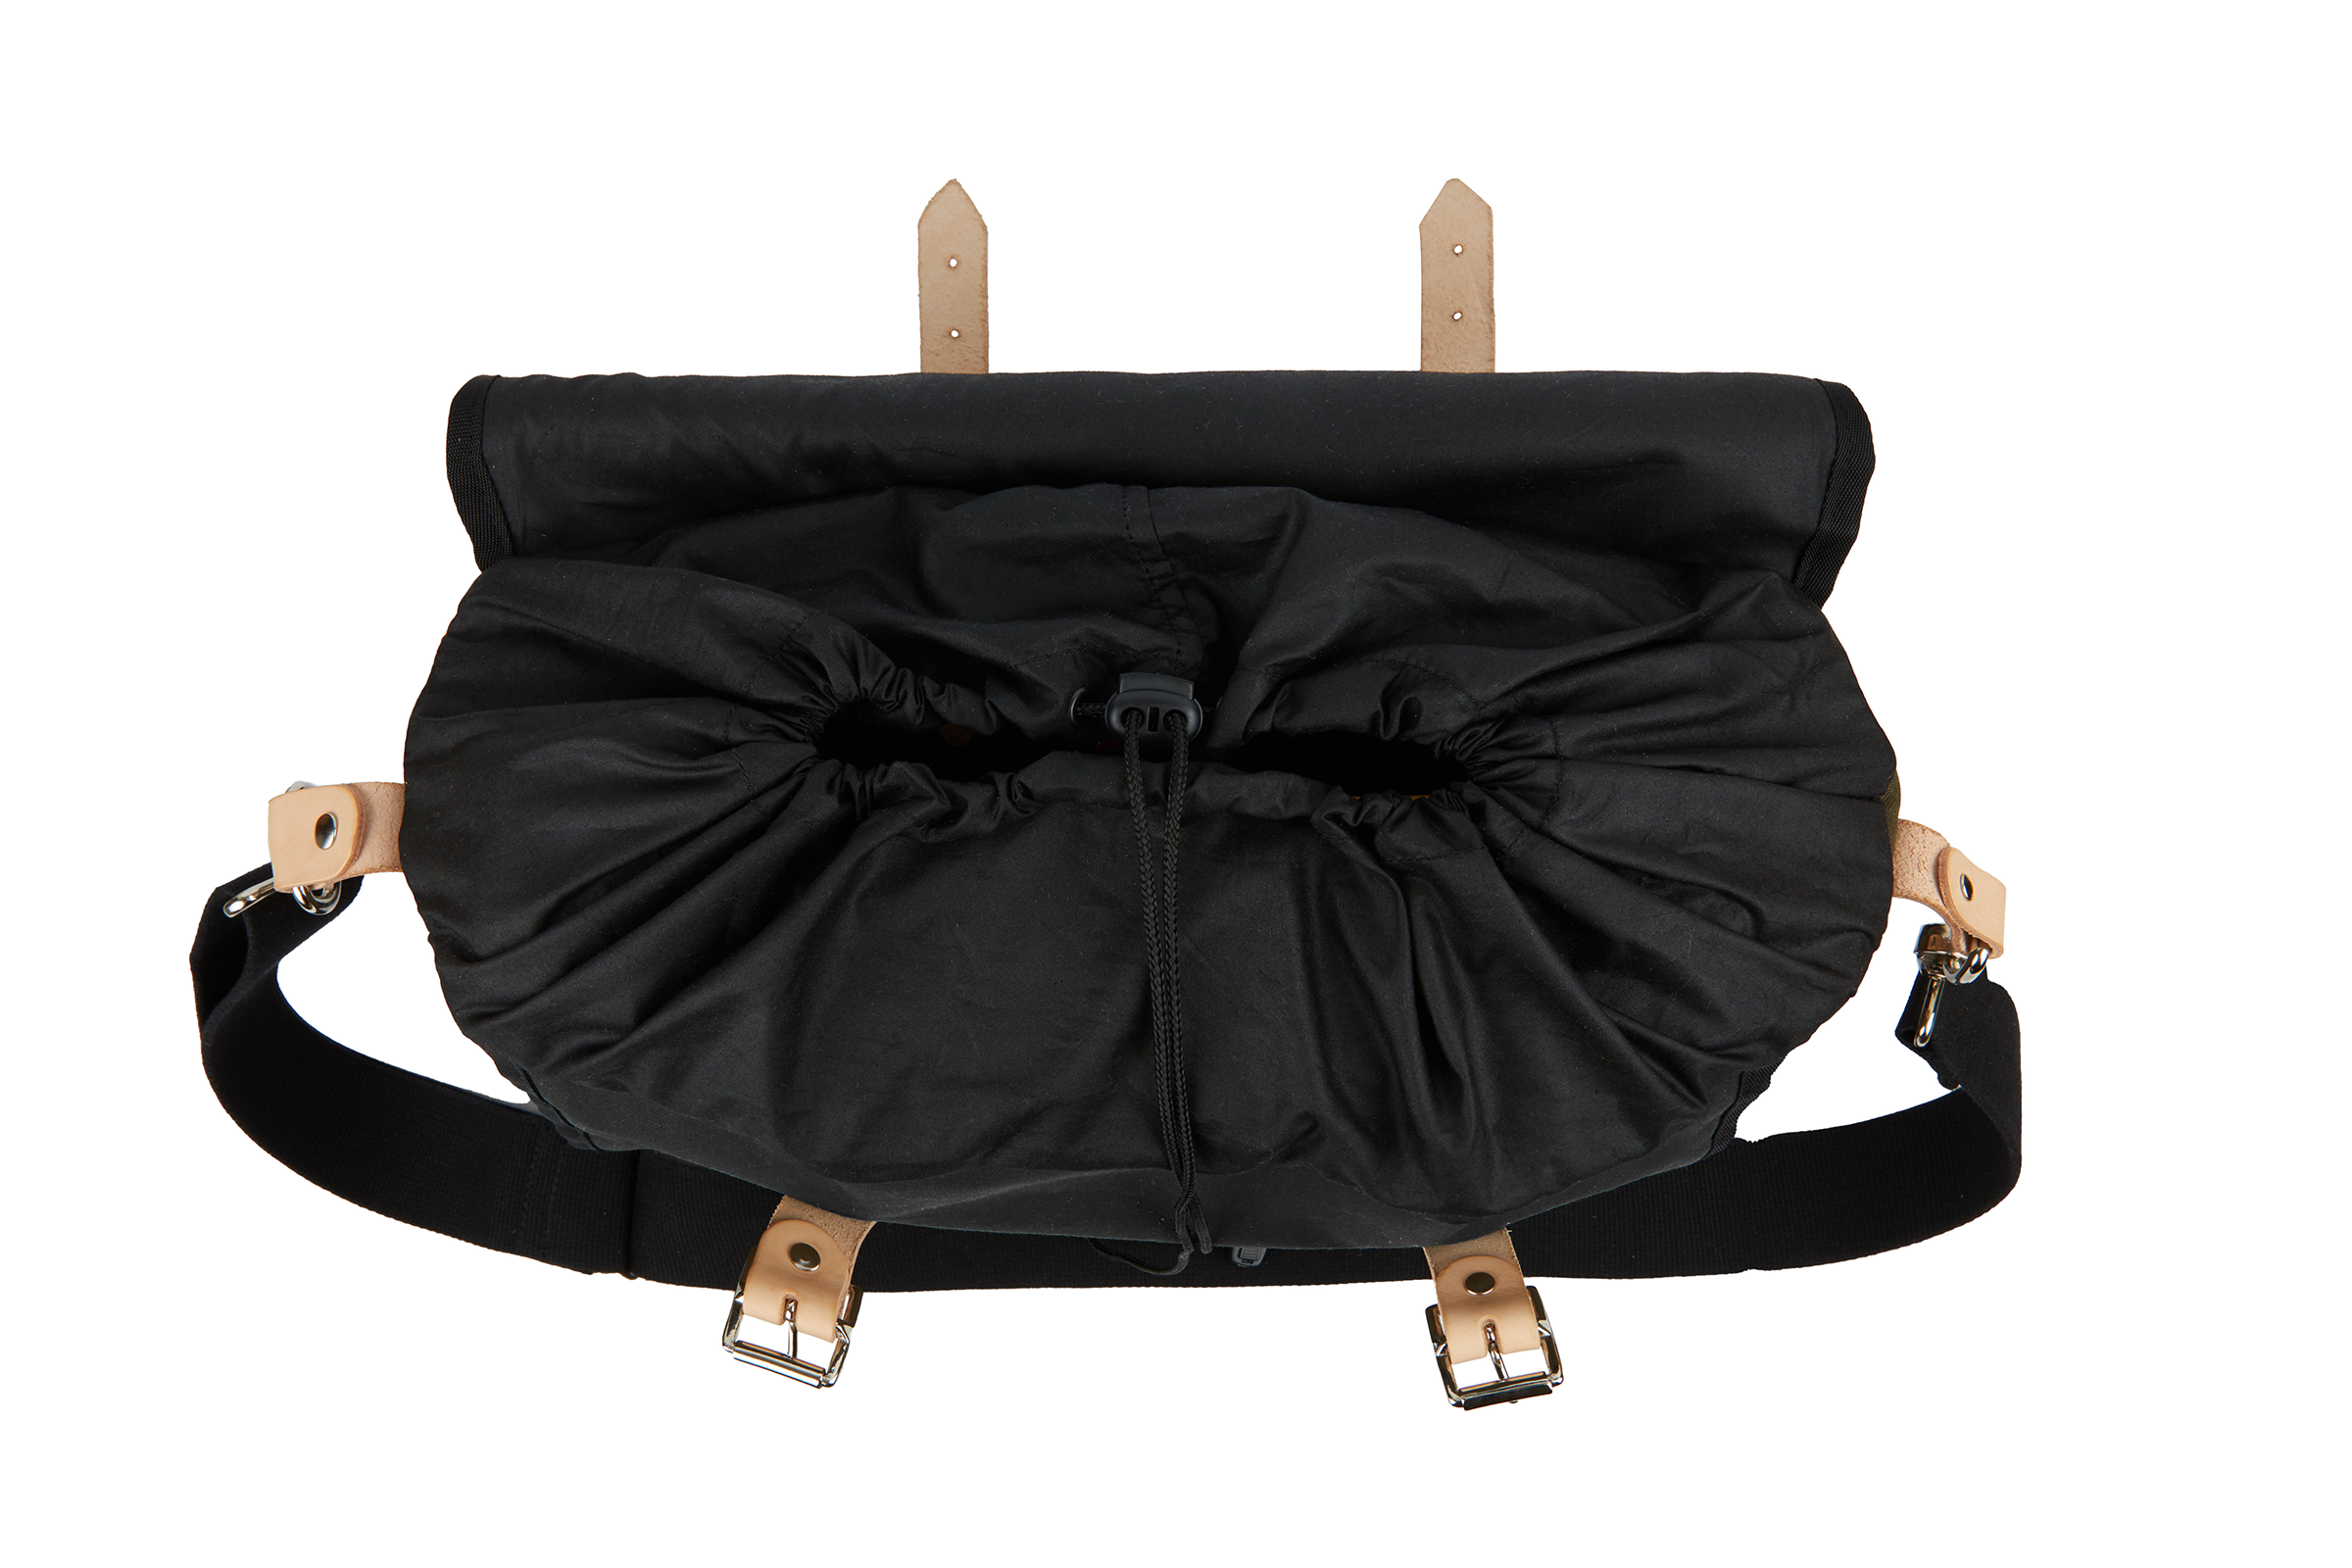 The Otis, 16L, Saddle Bag - Black Canvas, Tan Leather